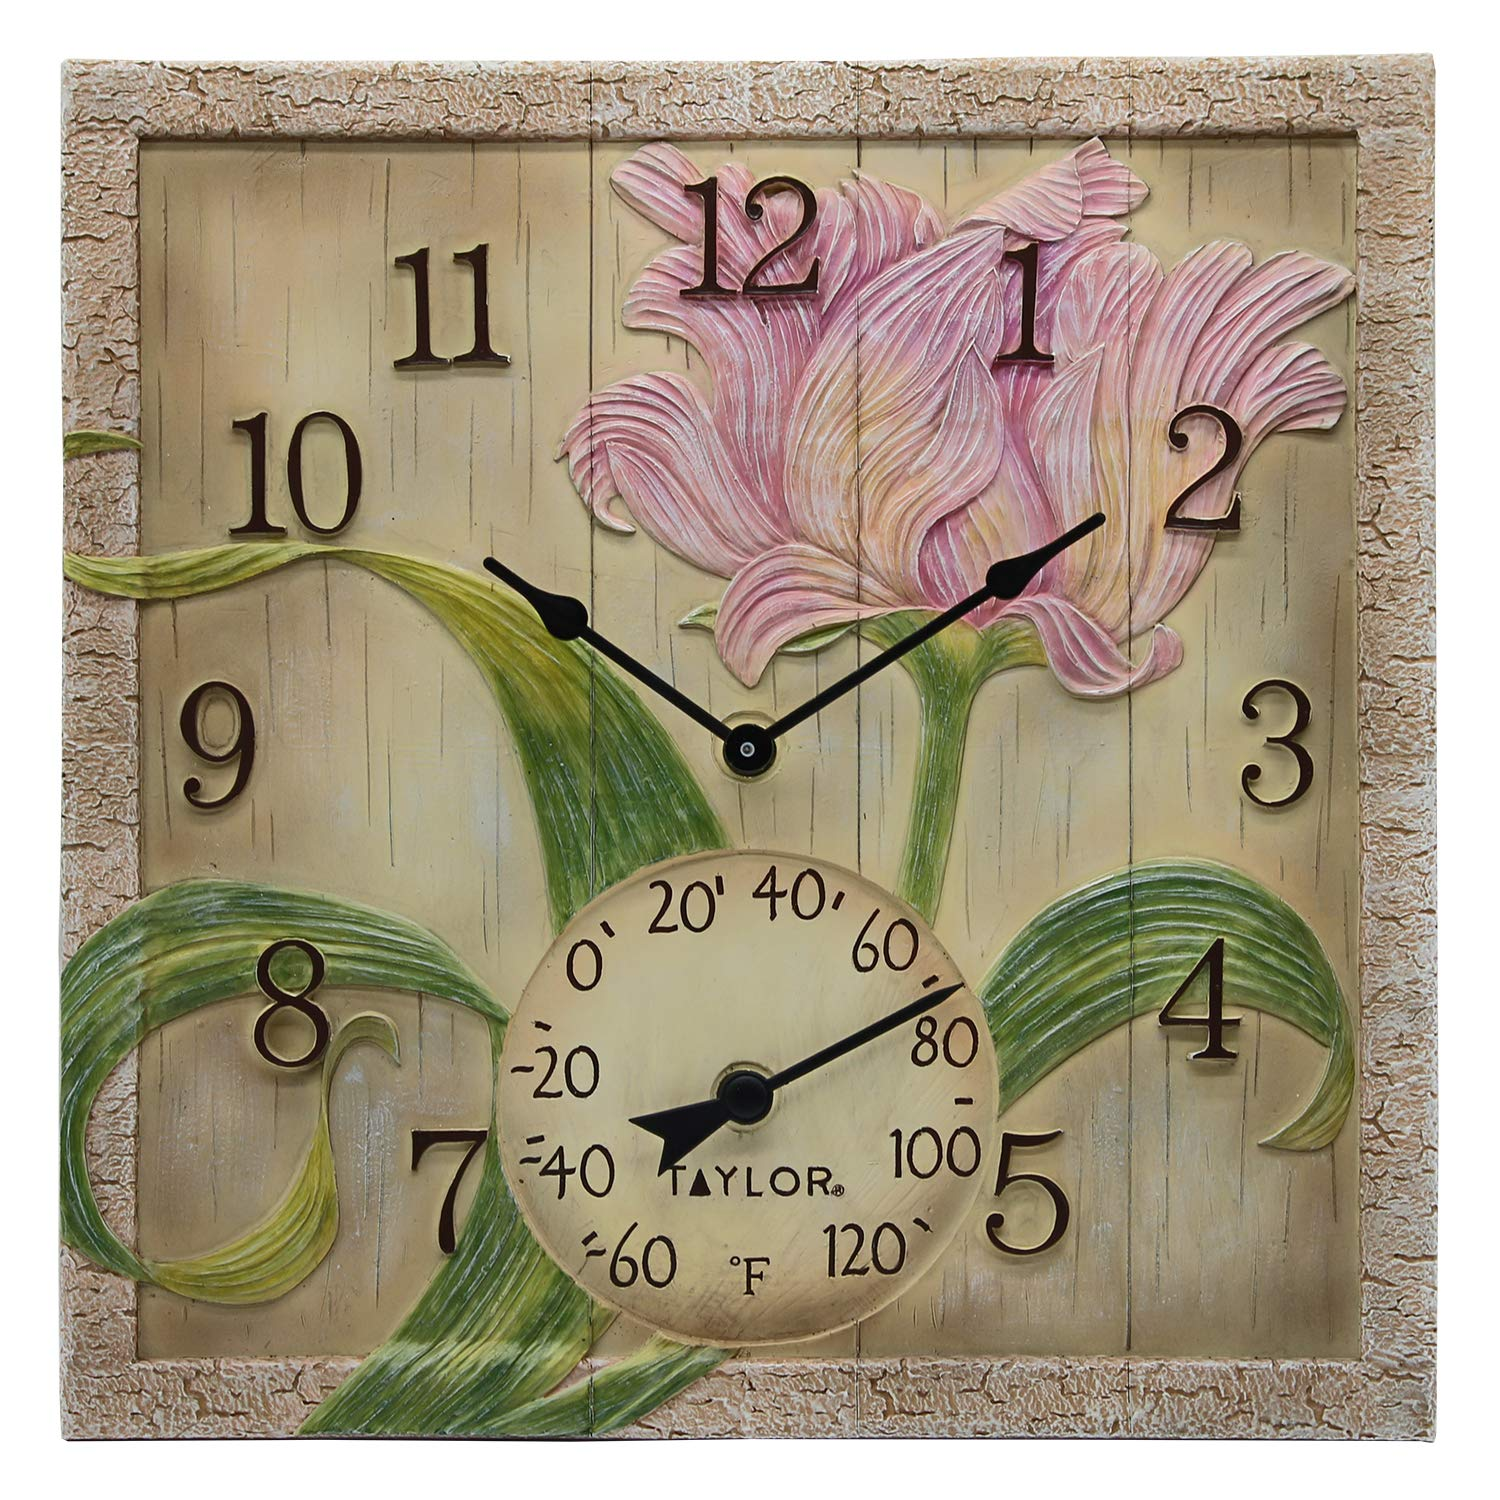 Taylor Precision Products 92691T 14'' x 14'' Poly Resin Beachwood Flower Clock with Thermometer, Multicolored